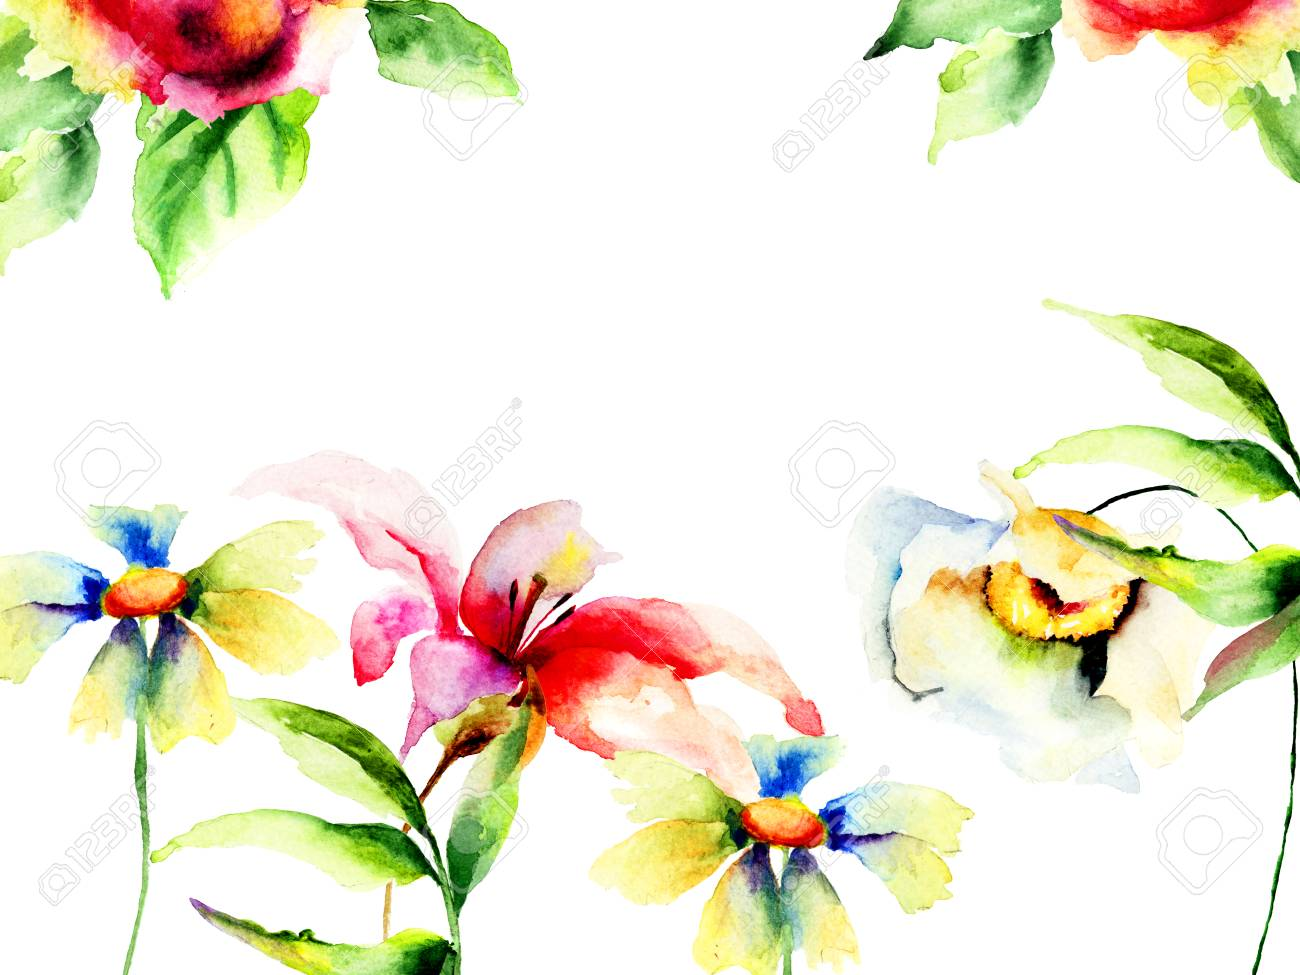 spring flowers watercolor painting template for greeting card